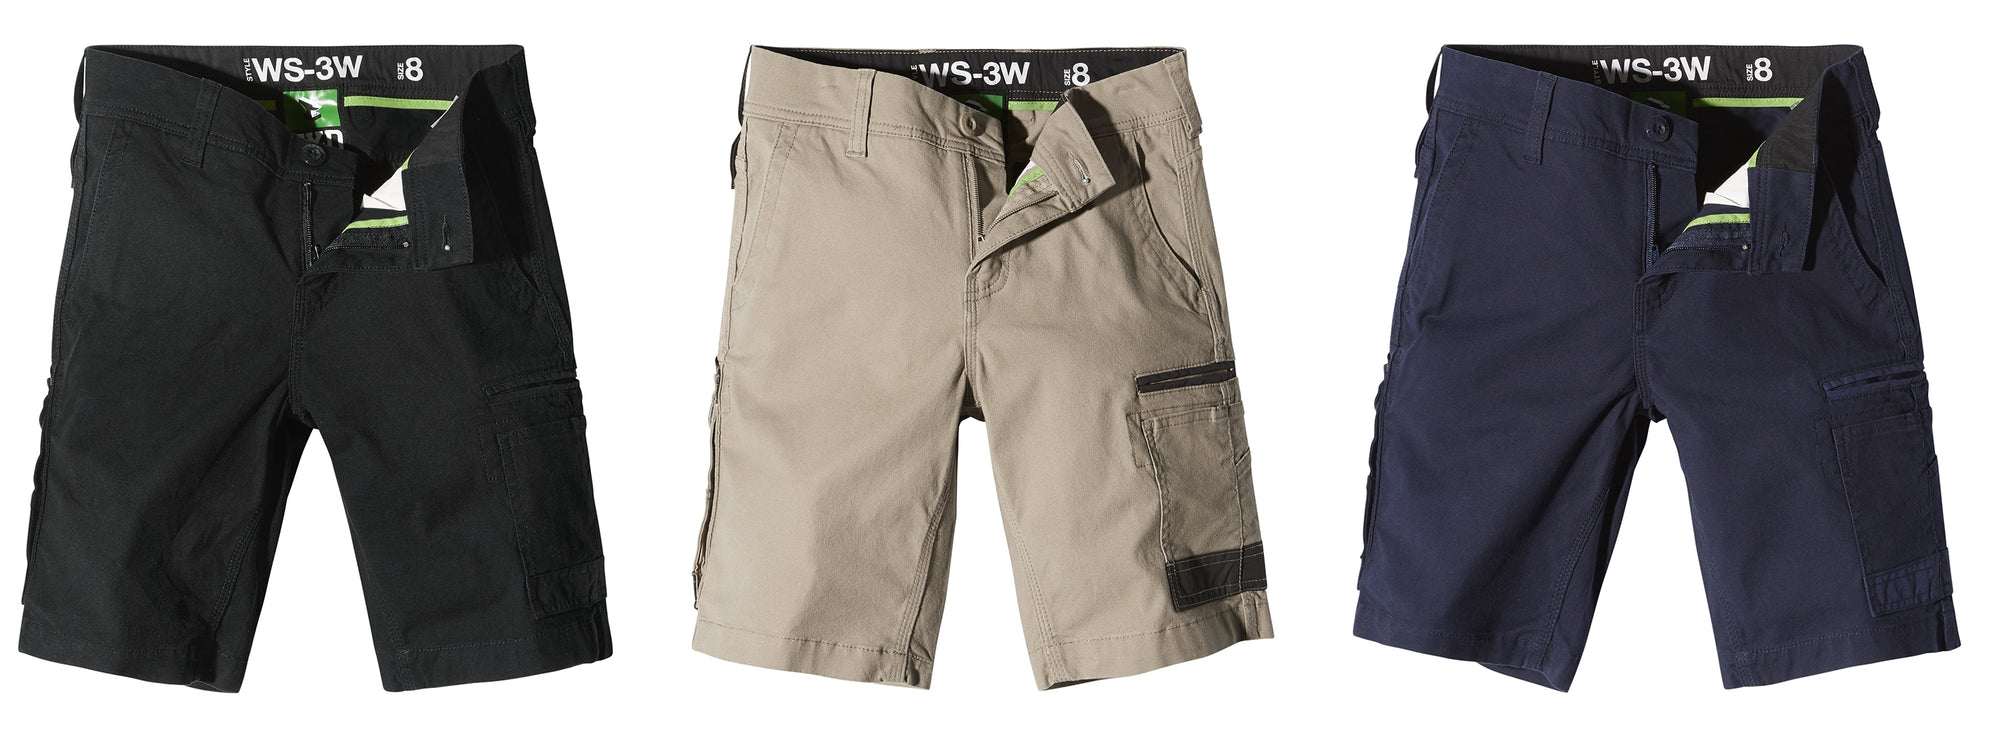 FXD Womens WS-3W Short (4498840223881)